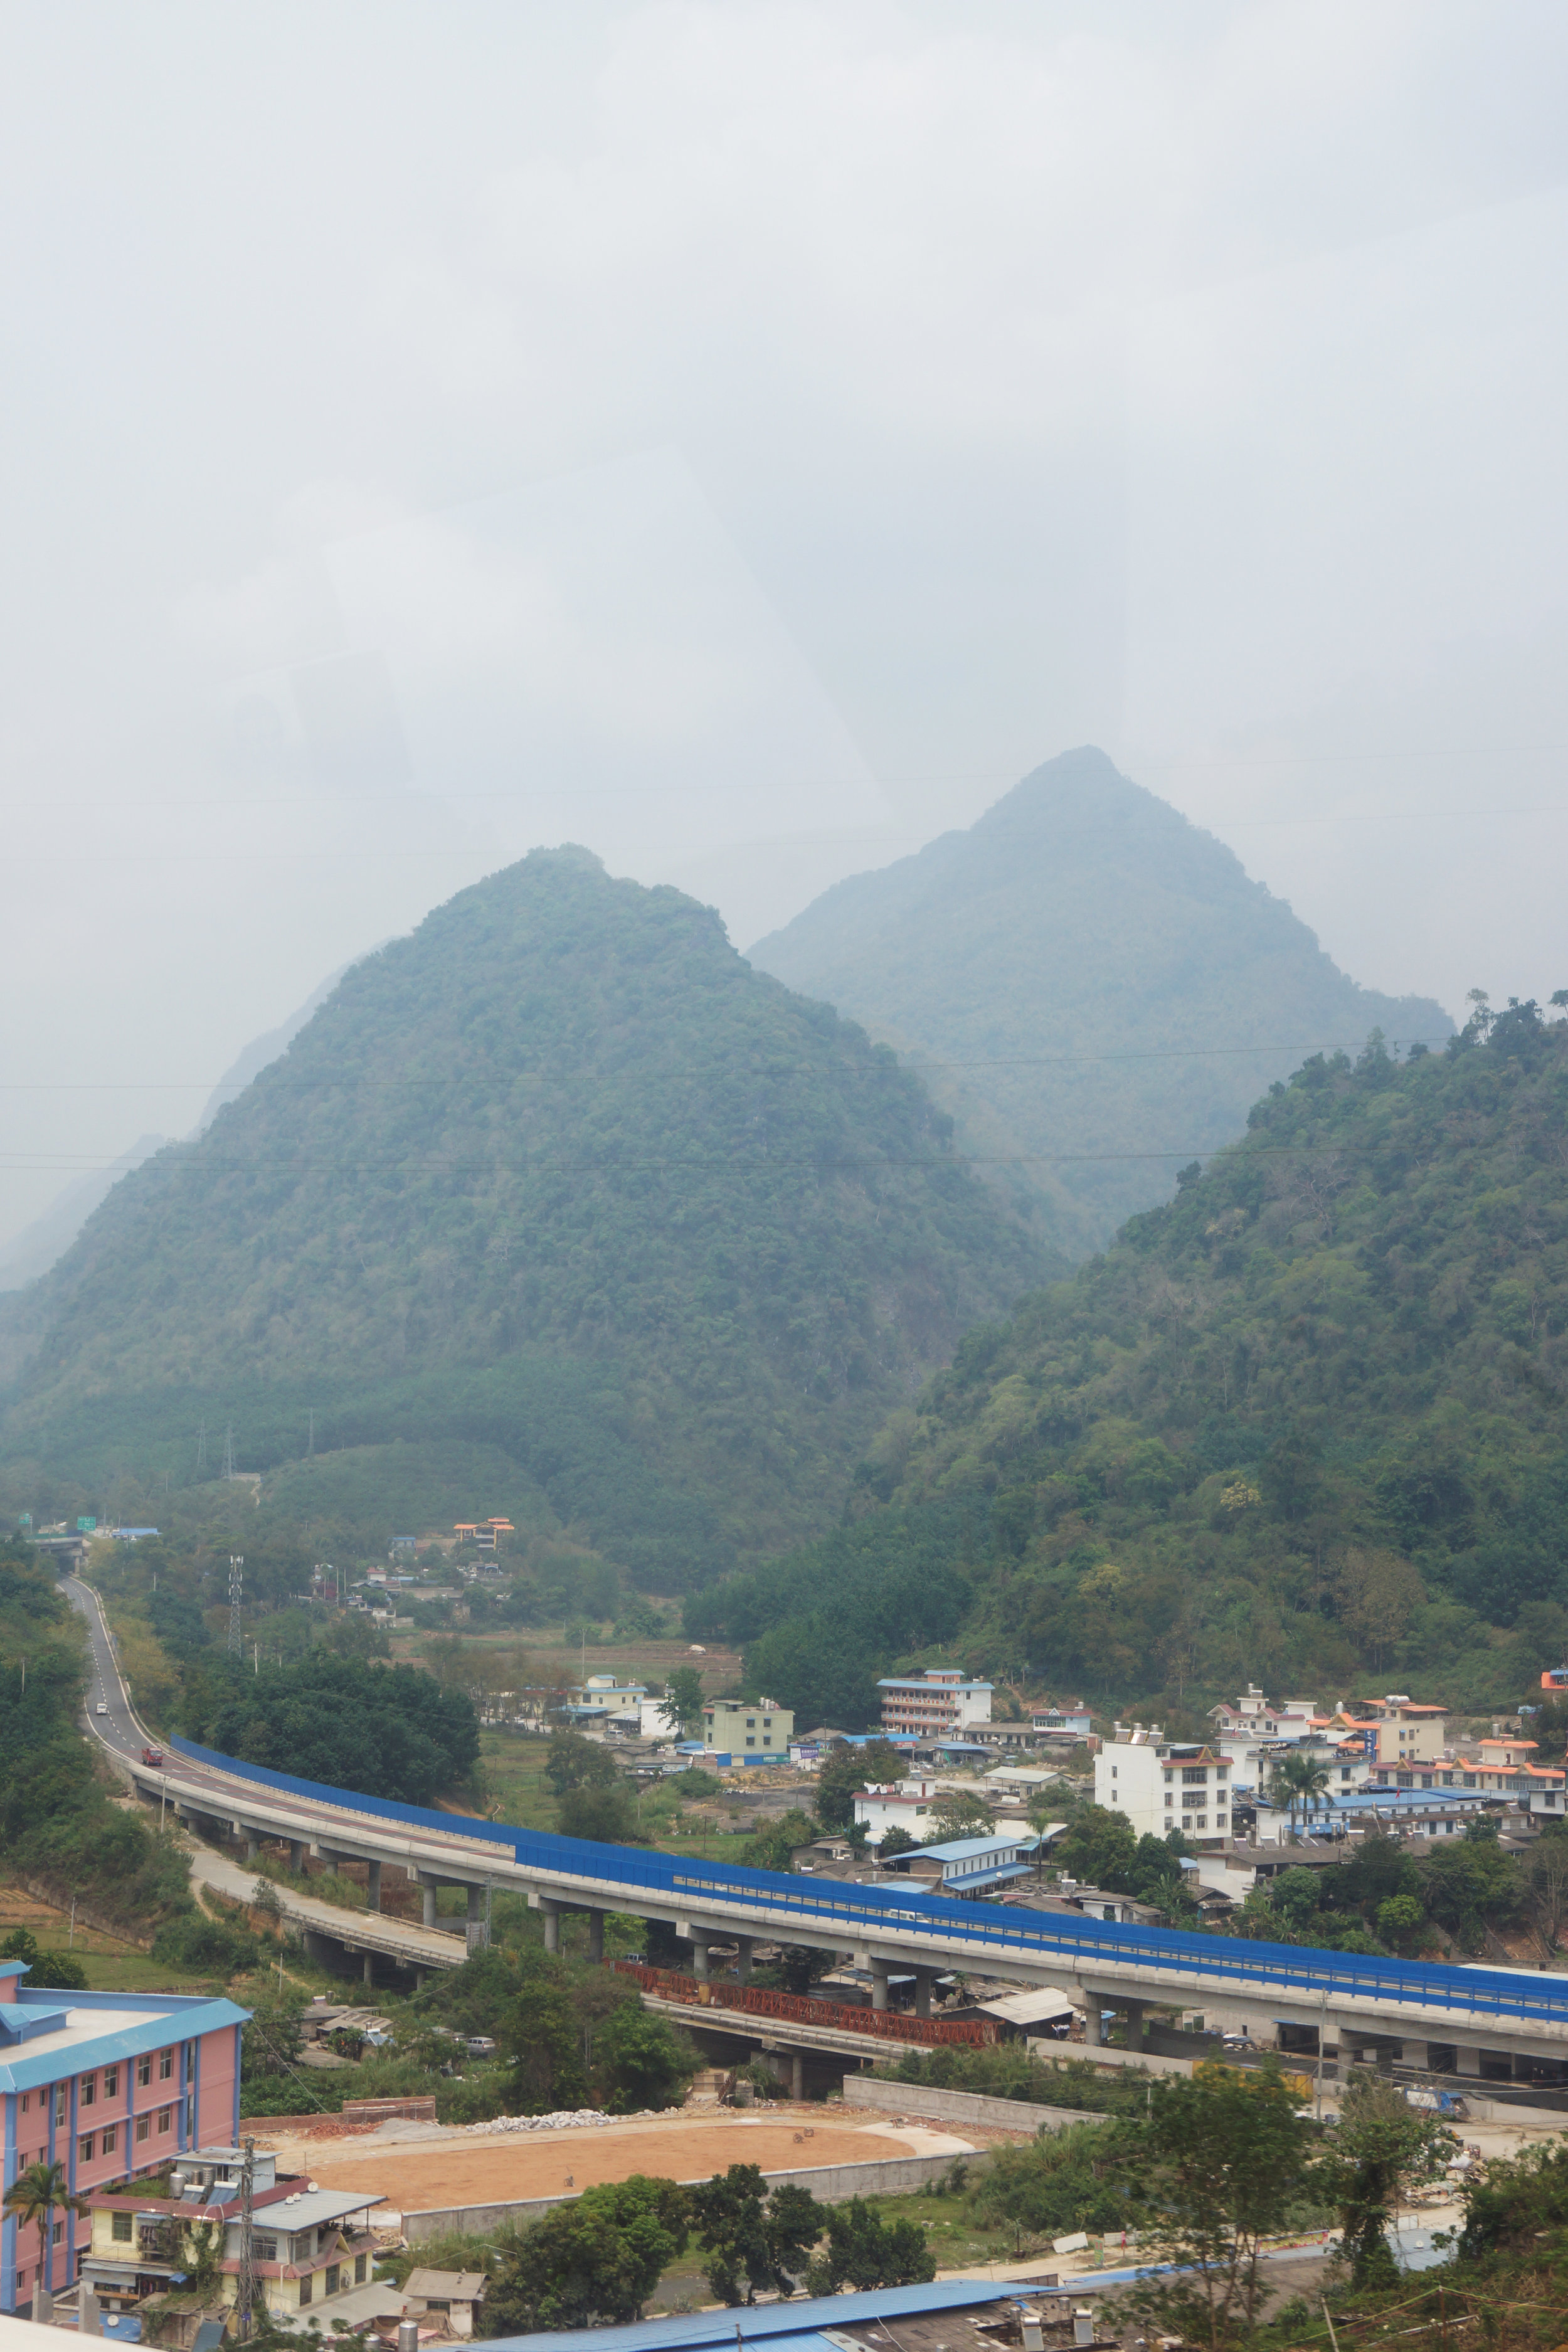 View on the road to Jinghong.